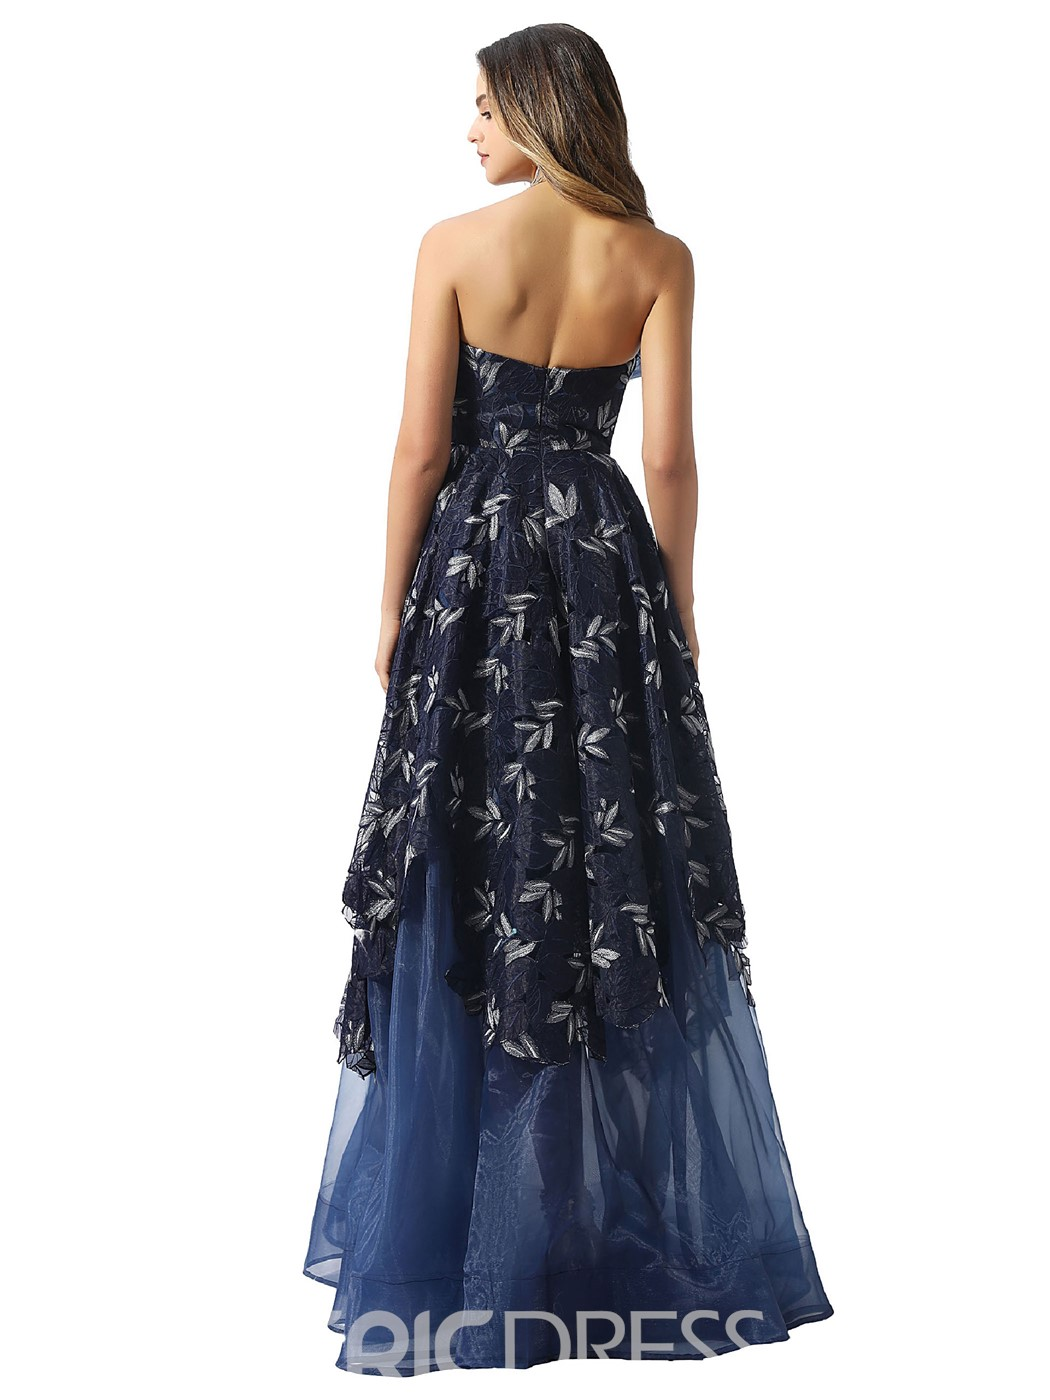 Ericdress Sleeveless Ruched Strapless Prom Dress